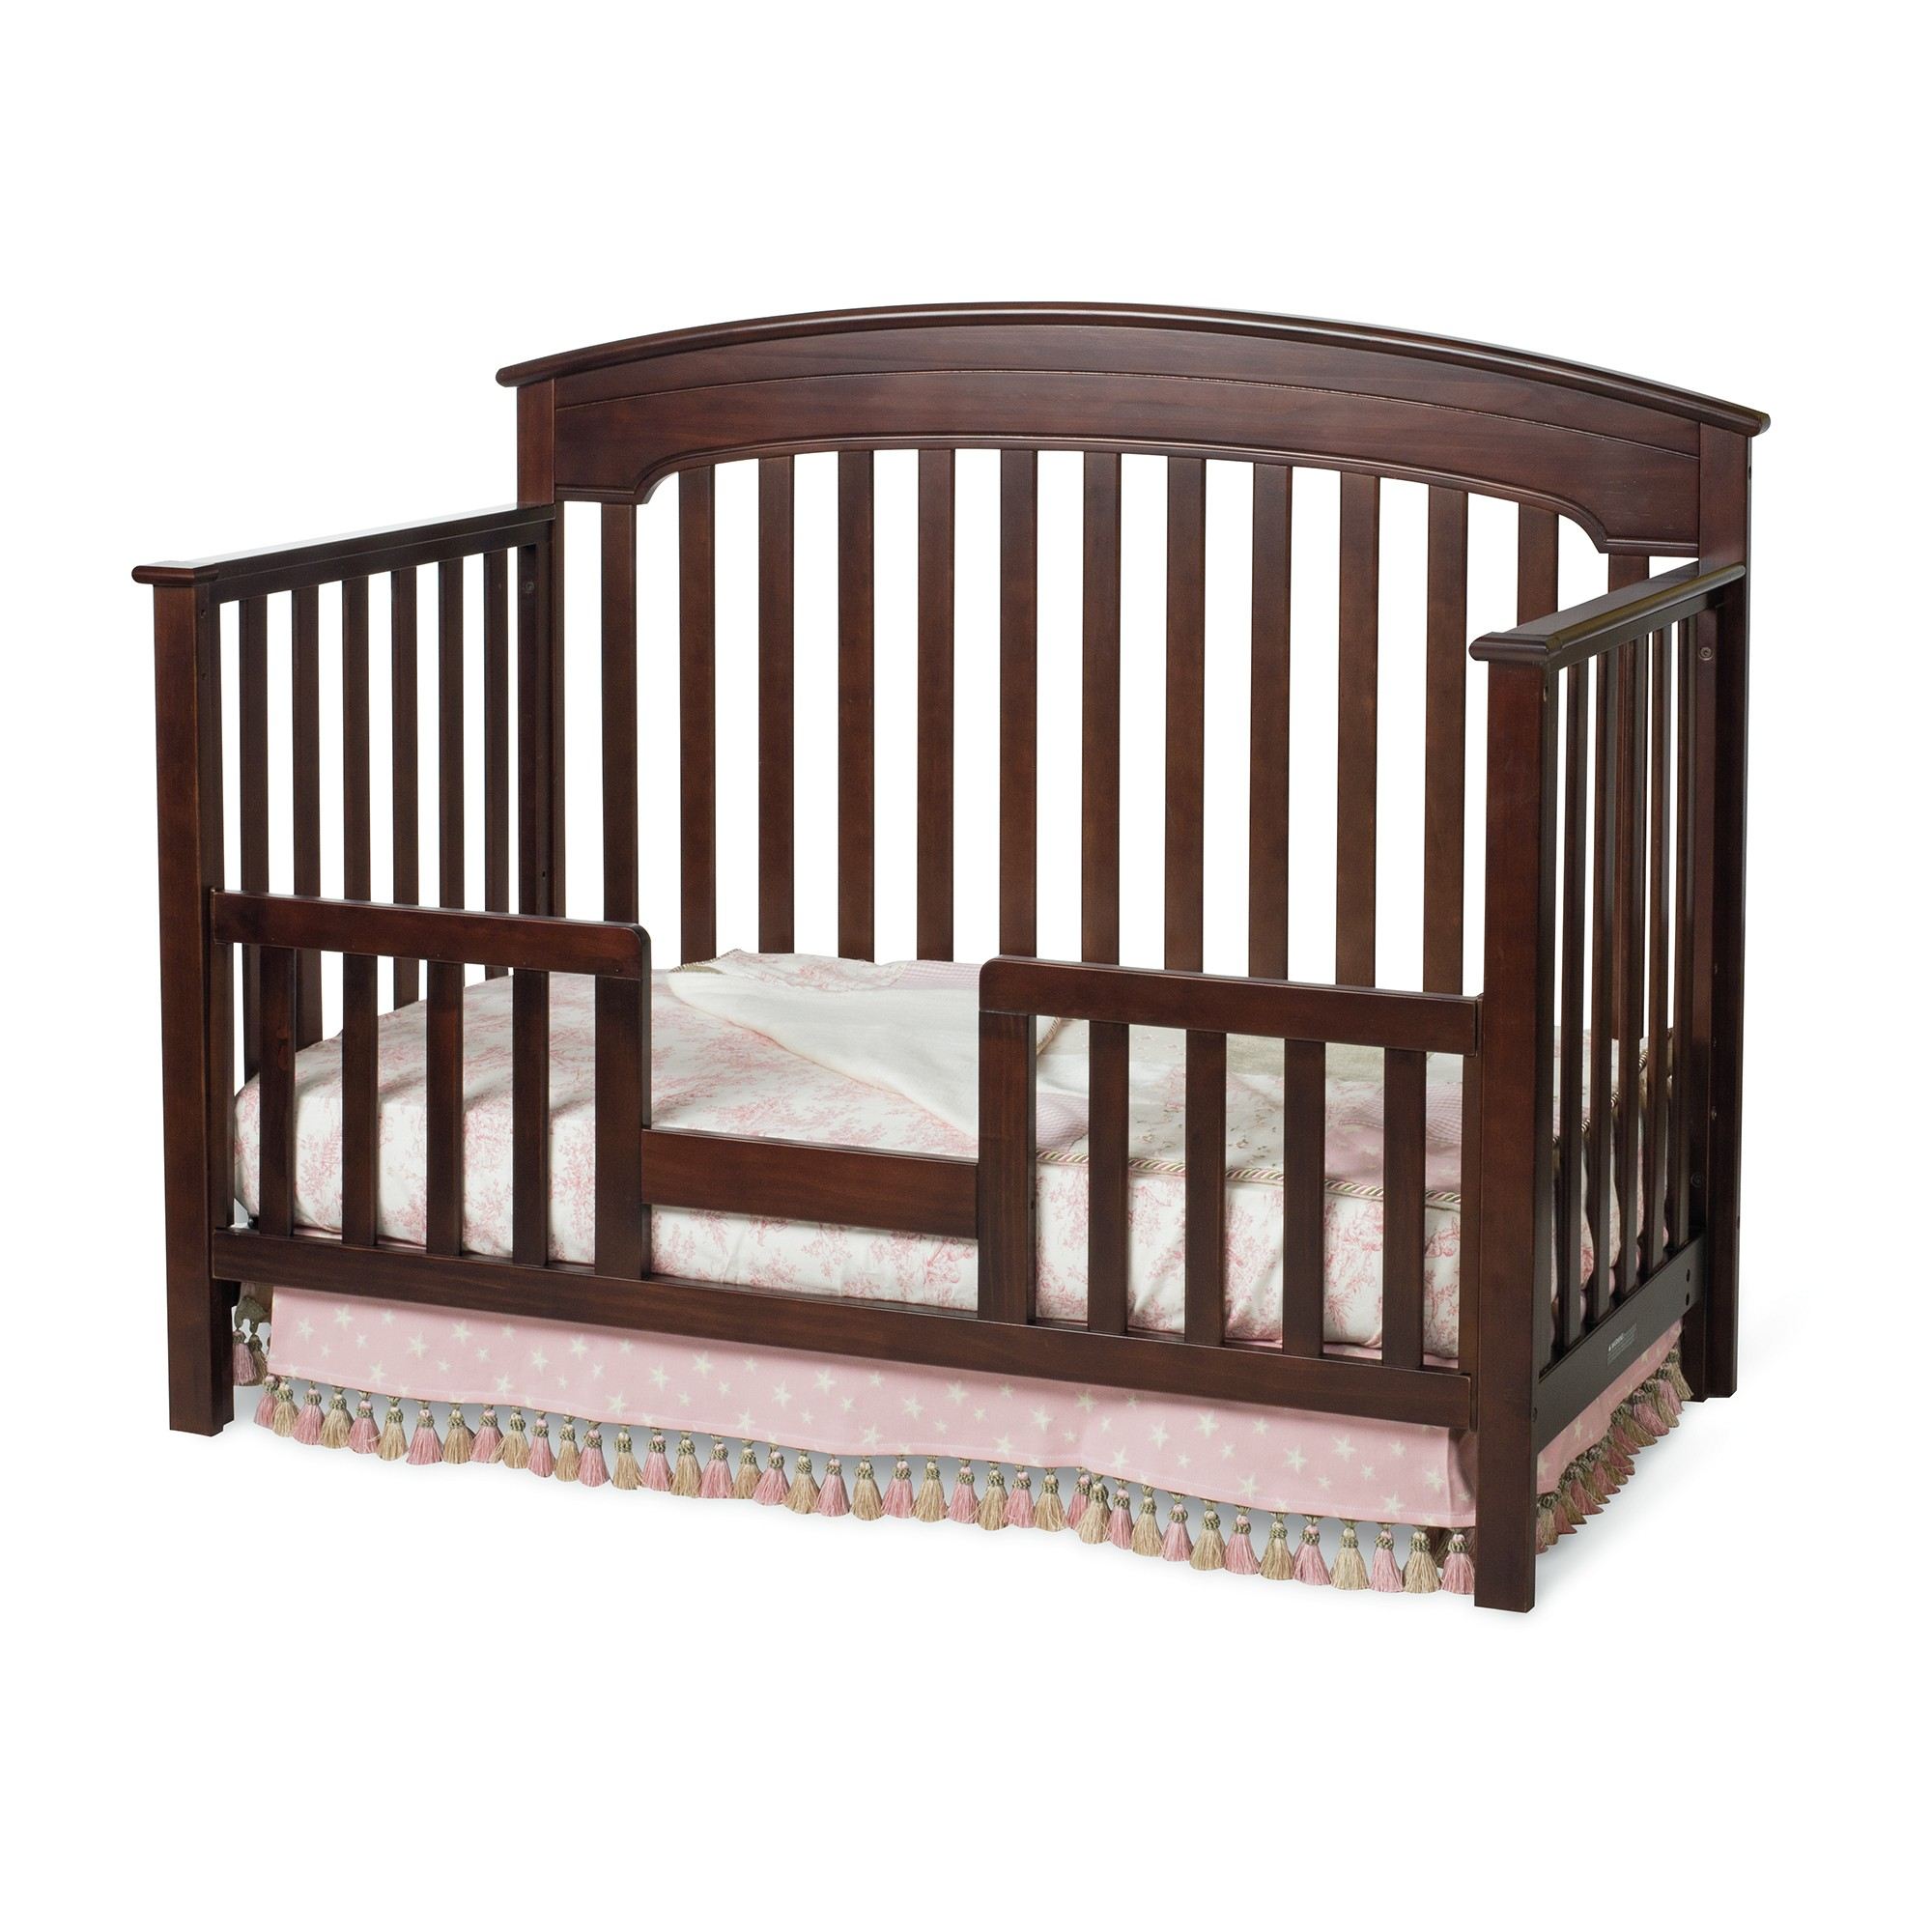 convertible cribs wadsworth convertible child craft crib | child craft UZEAYKG